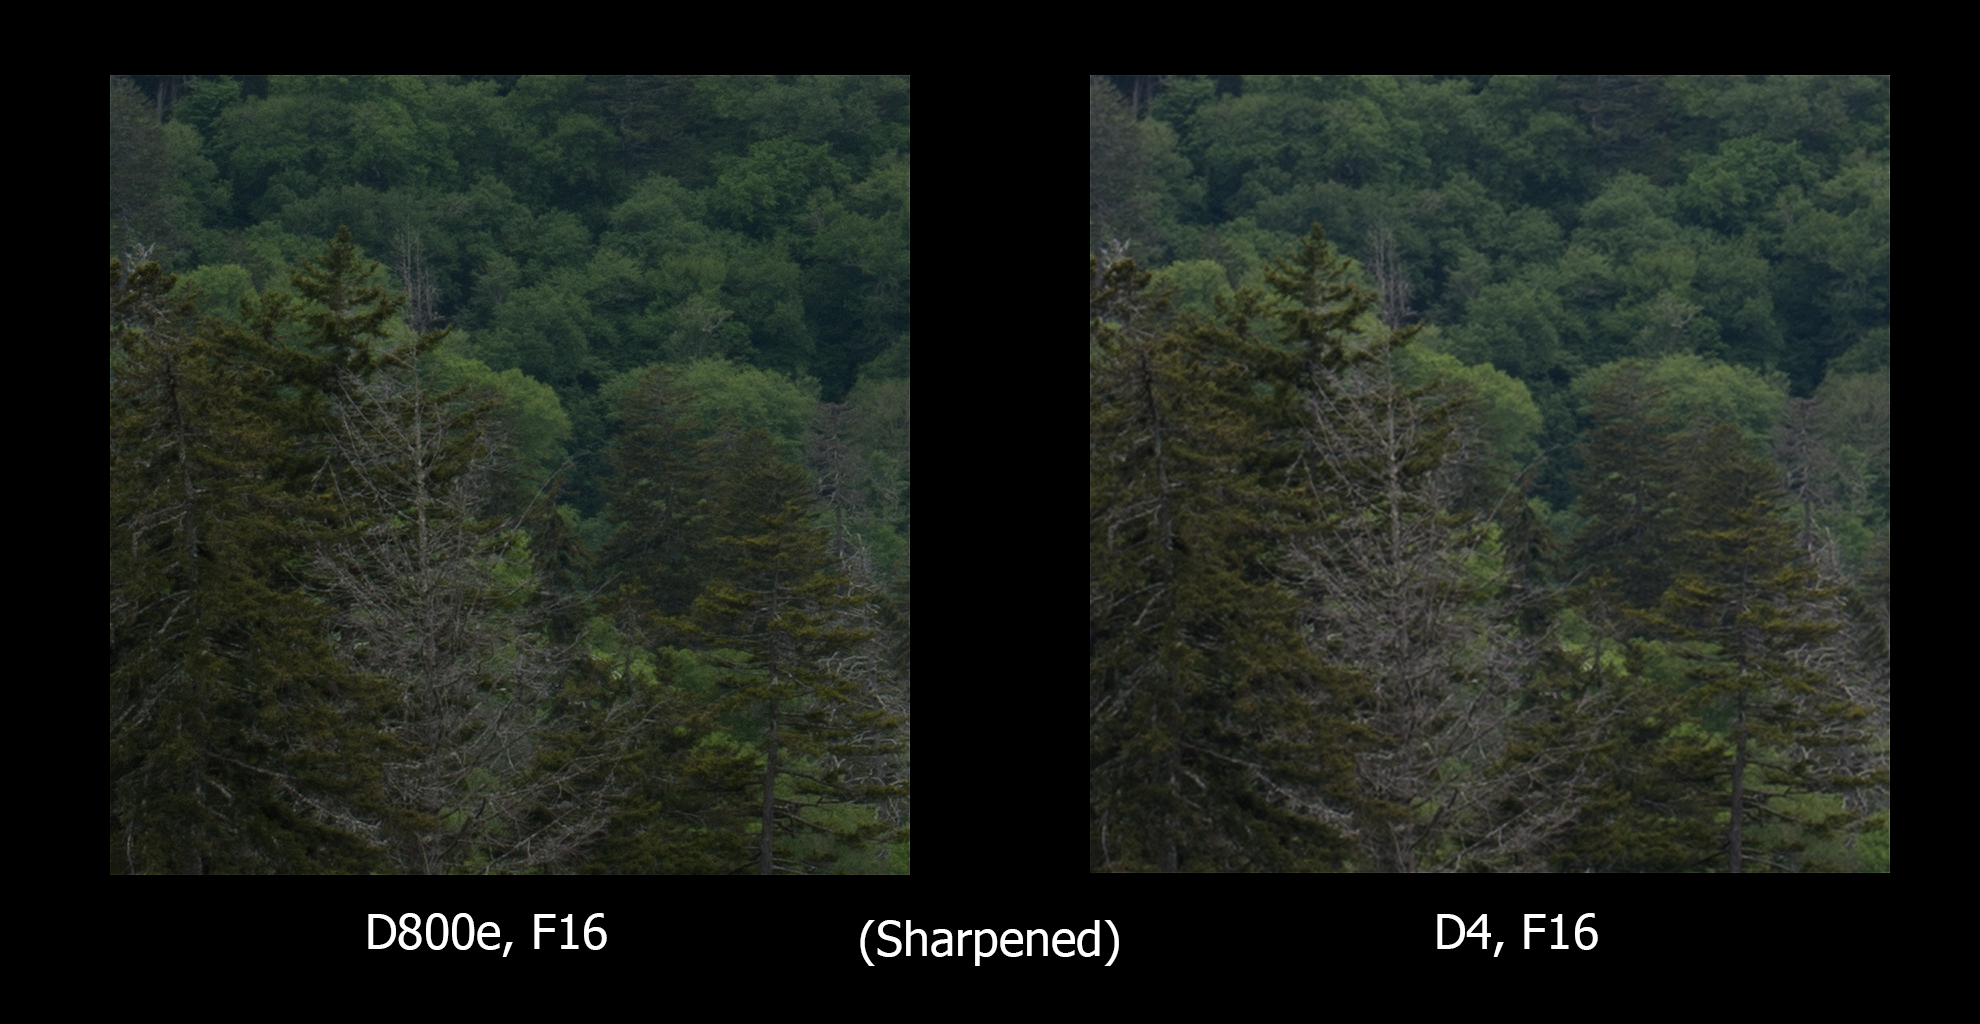 Same as above, only with equal sharpening added for both images